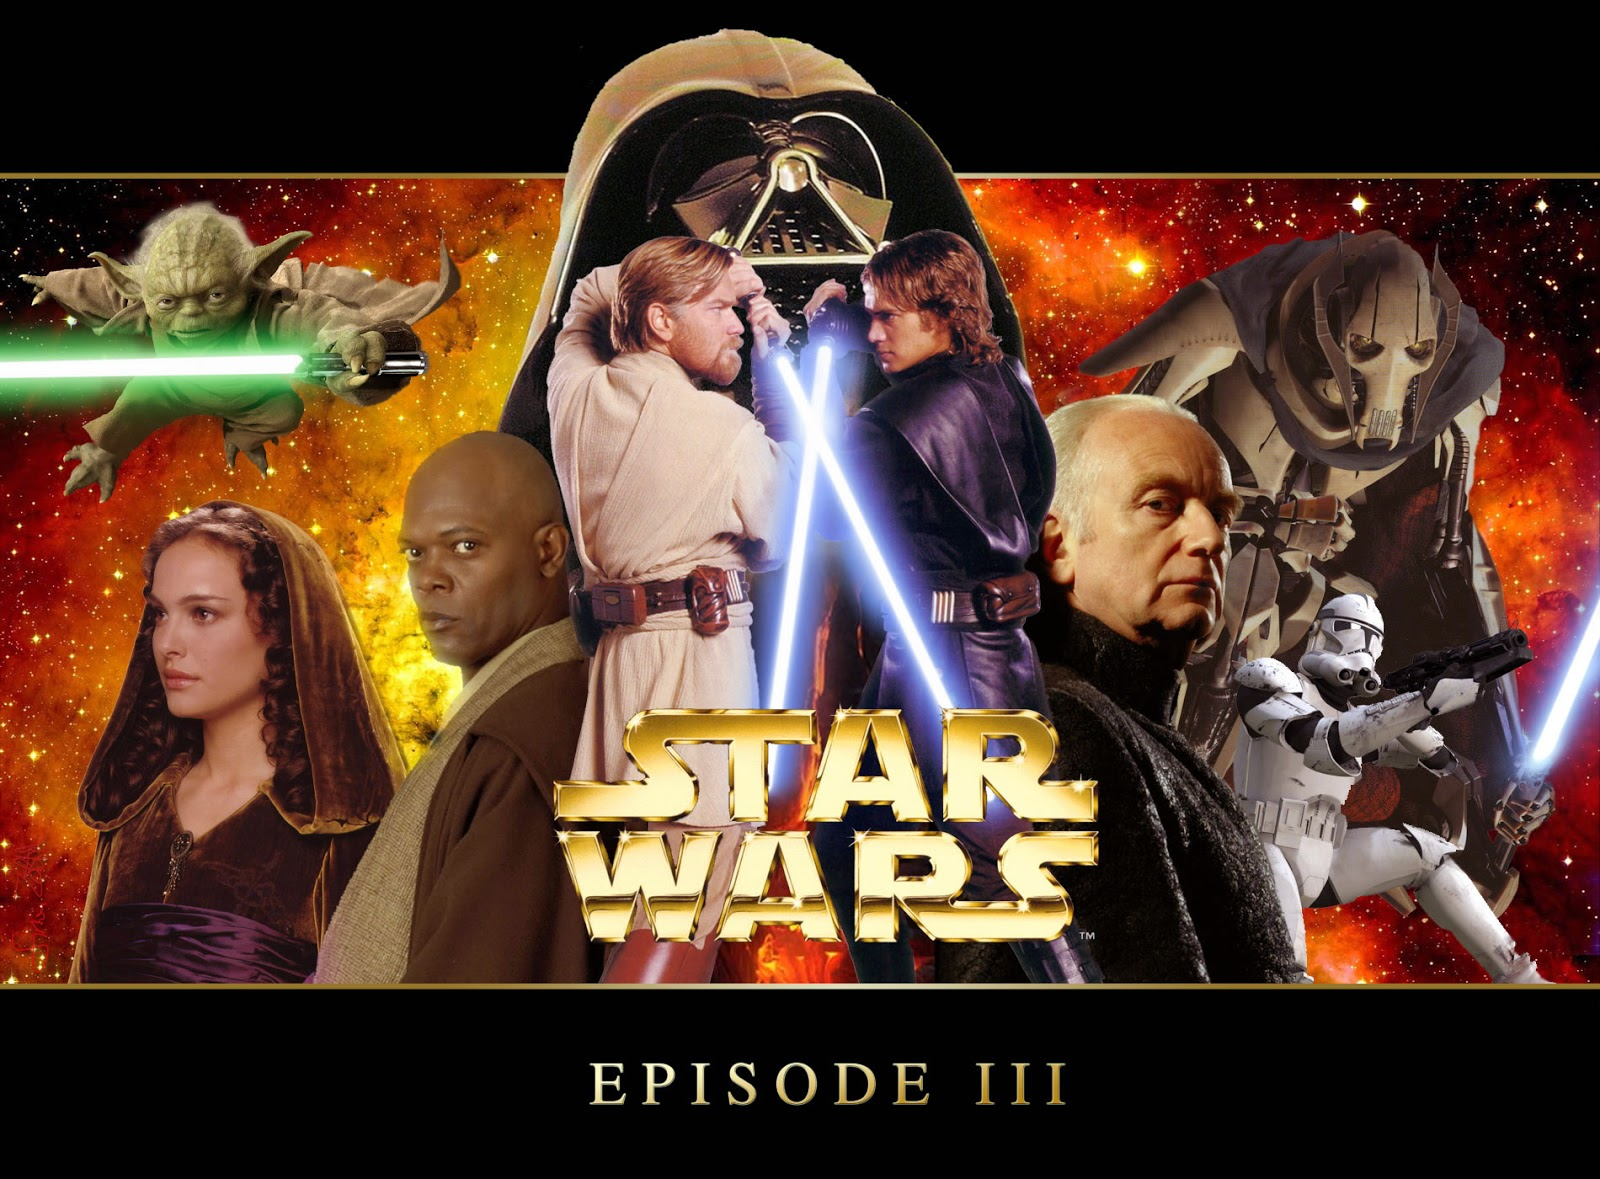 Star wars revenge of the sith blu-ray label dvd covers.